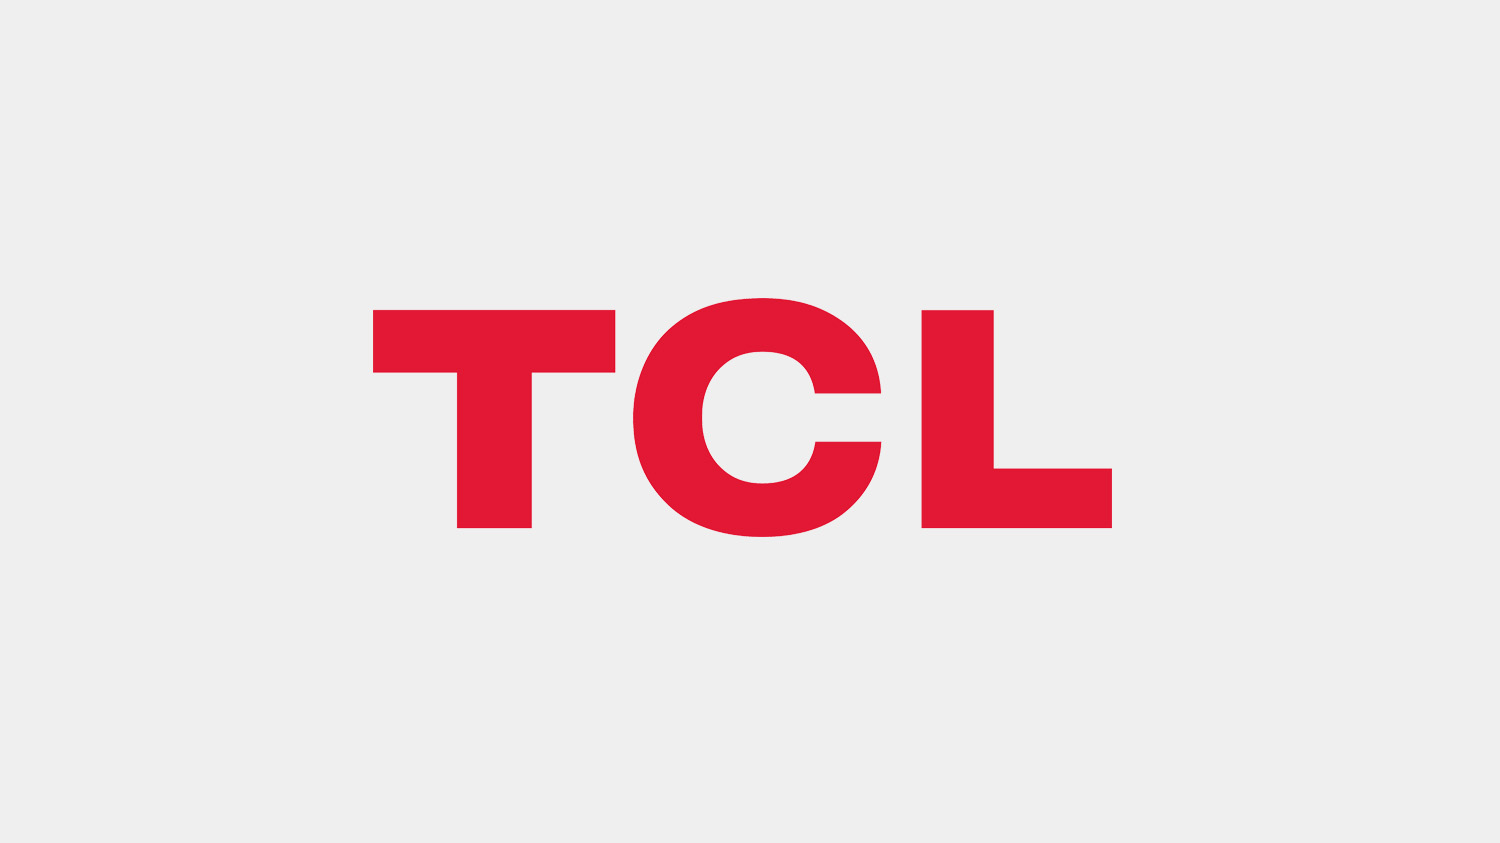 marca tv tcl